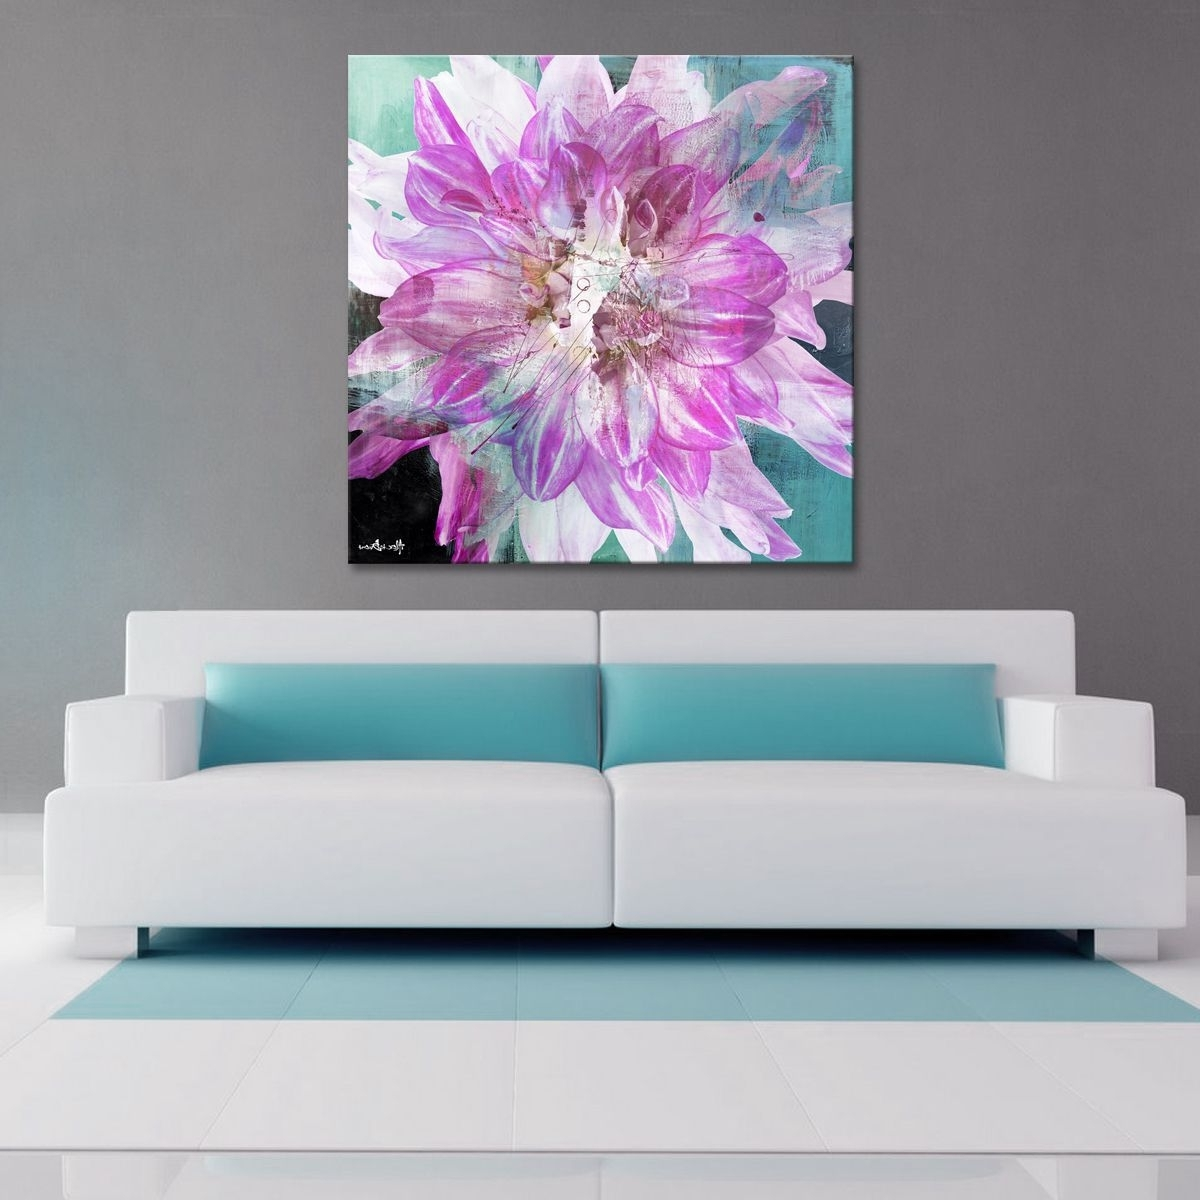 Famous Bold Abstract Wall Art Pertaining To The 'painted Petals Xxx' Canvas Art Print Depicts A Bold Floral (View 11 of 15)